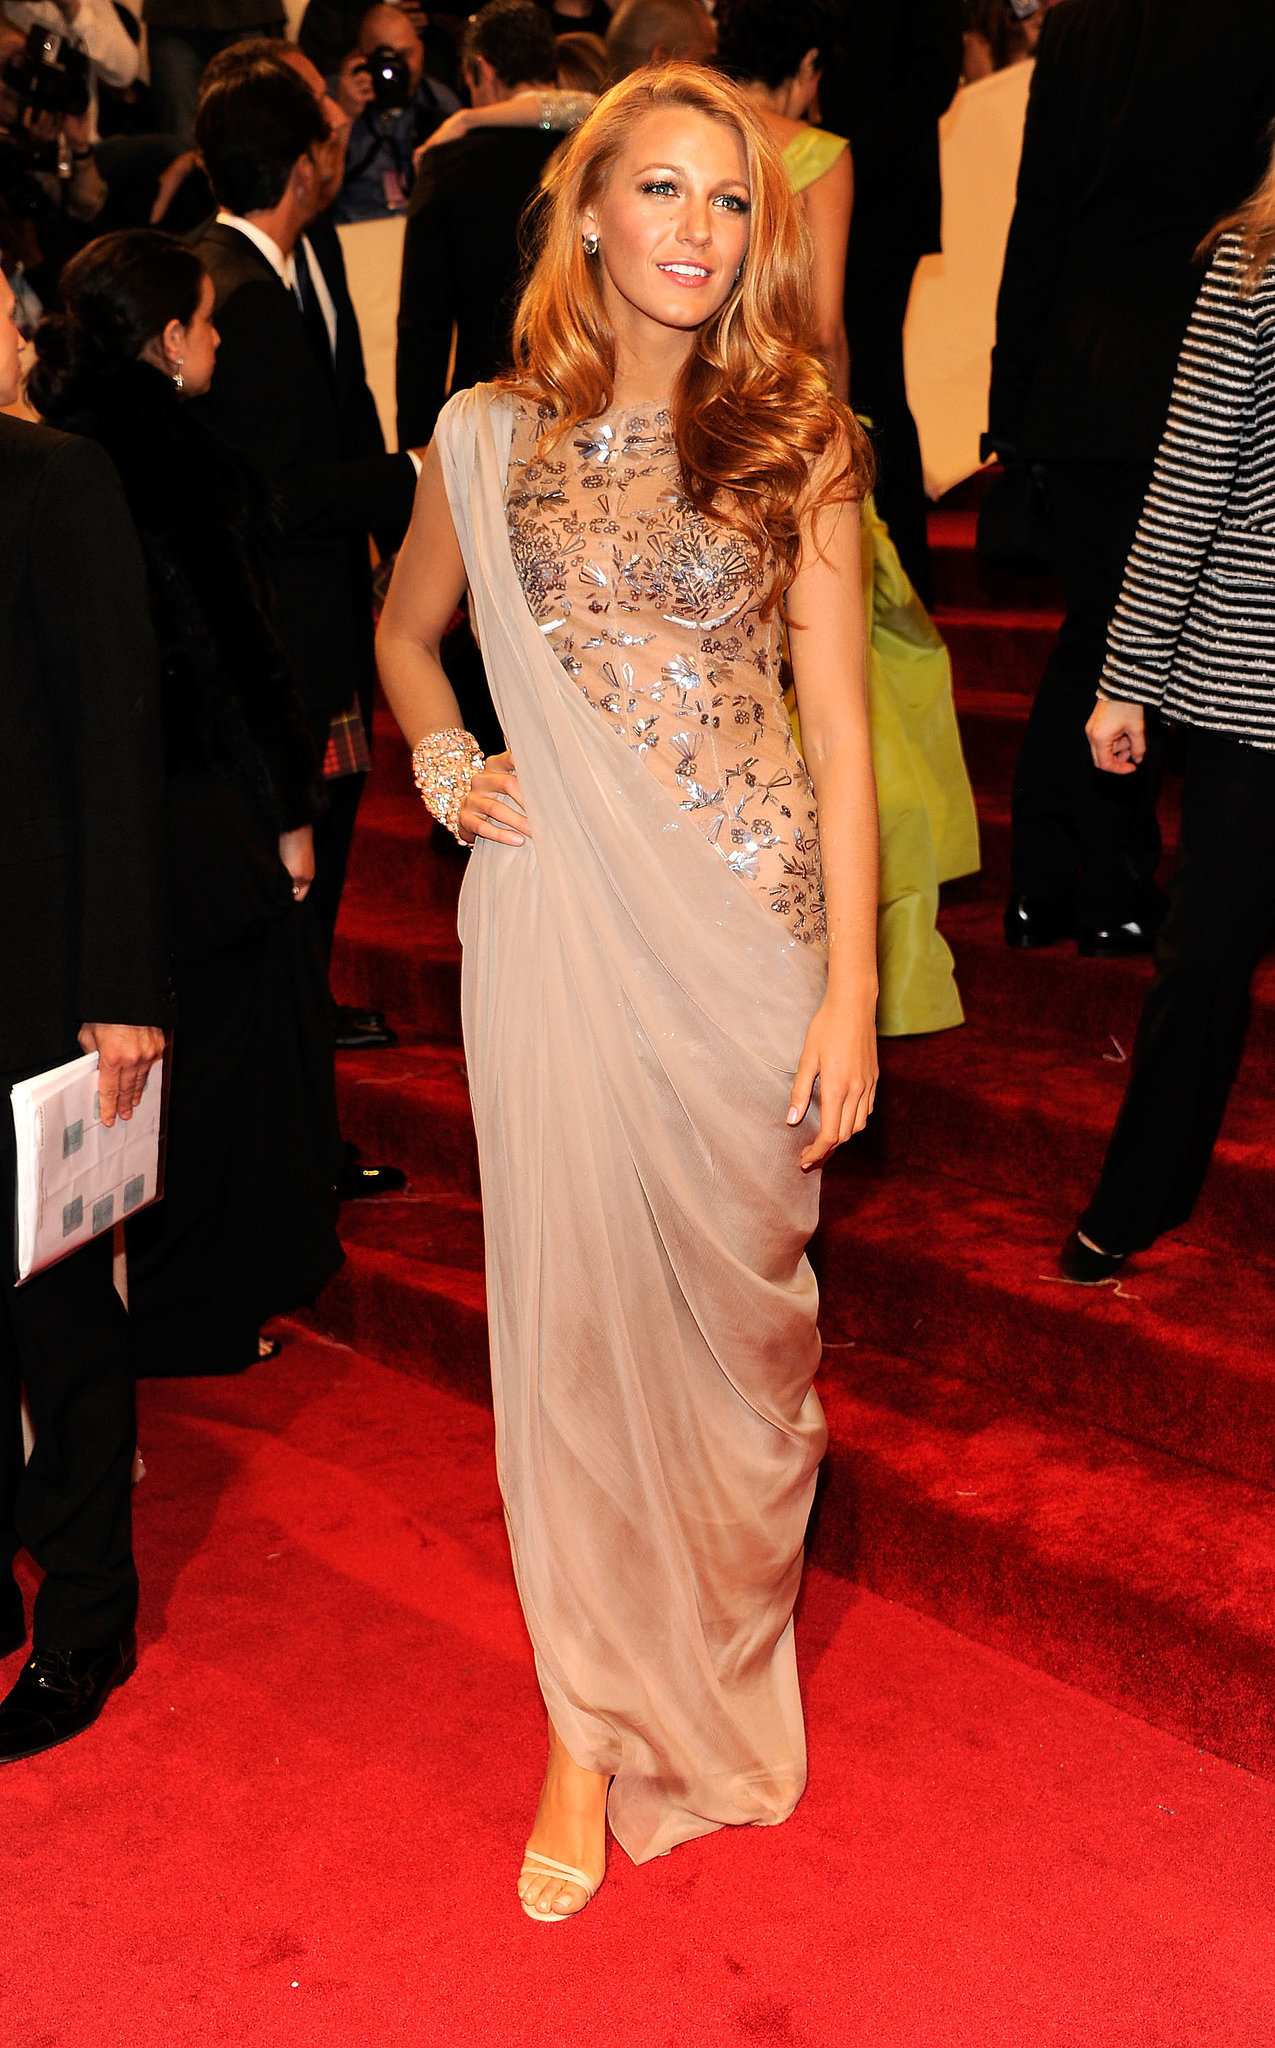 When She Stepped Out For the 2011 Met Gala